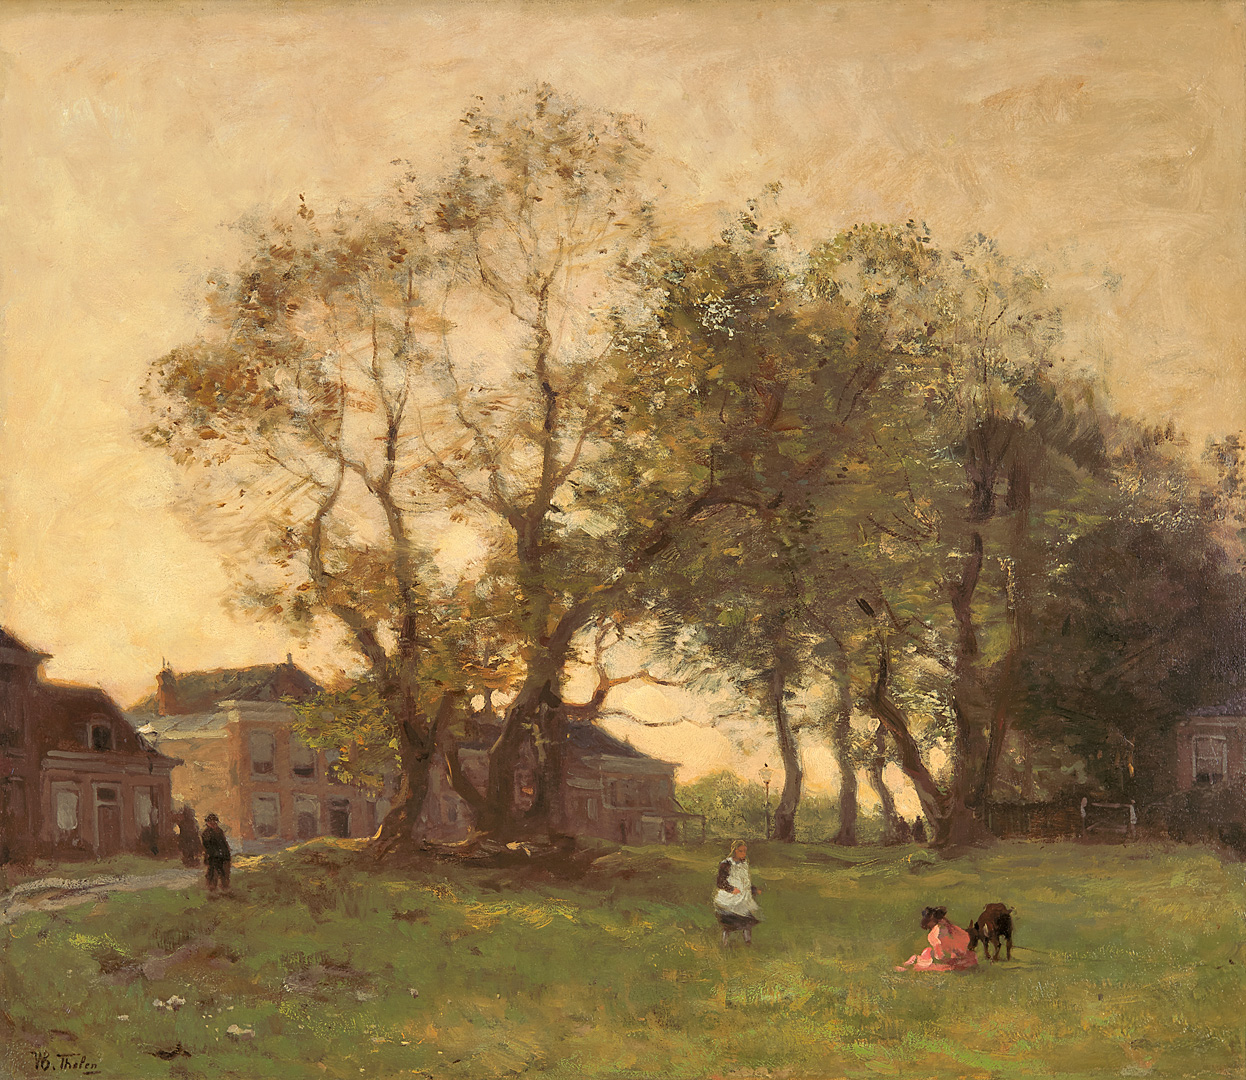 Children playing under the trees, The Hague Willem Bastiaan Tholen (1860-1931) - Kunsthandel Studio 2000